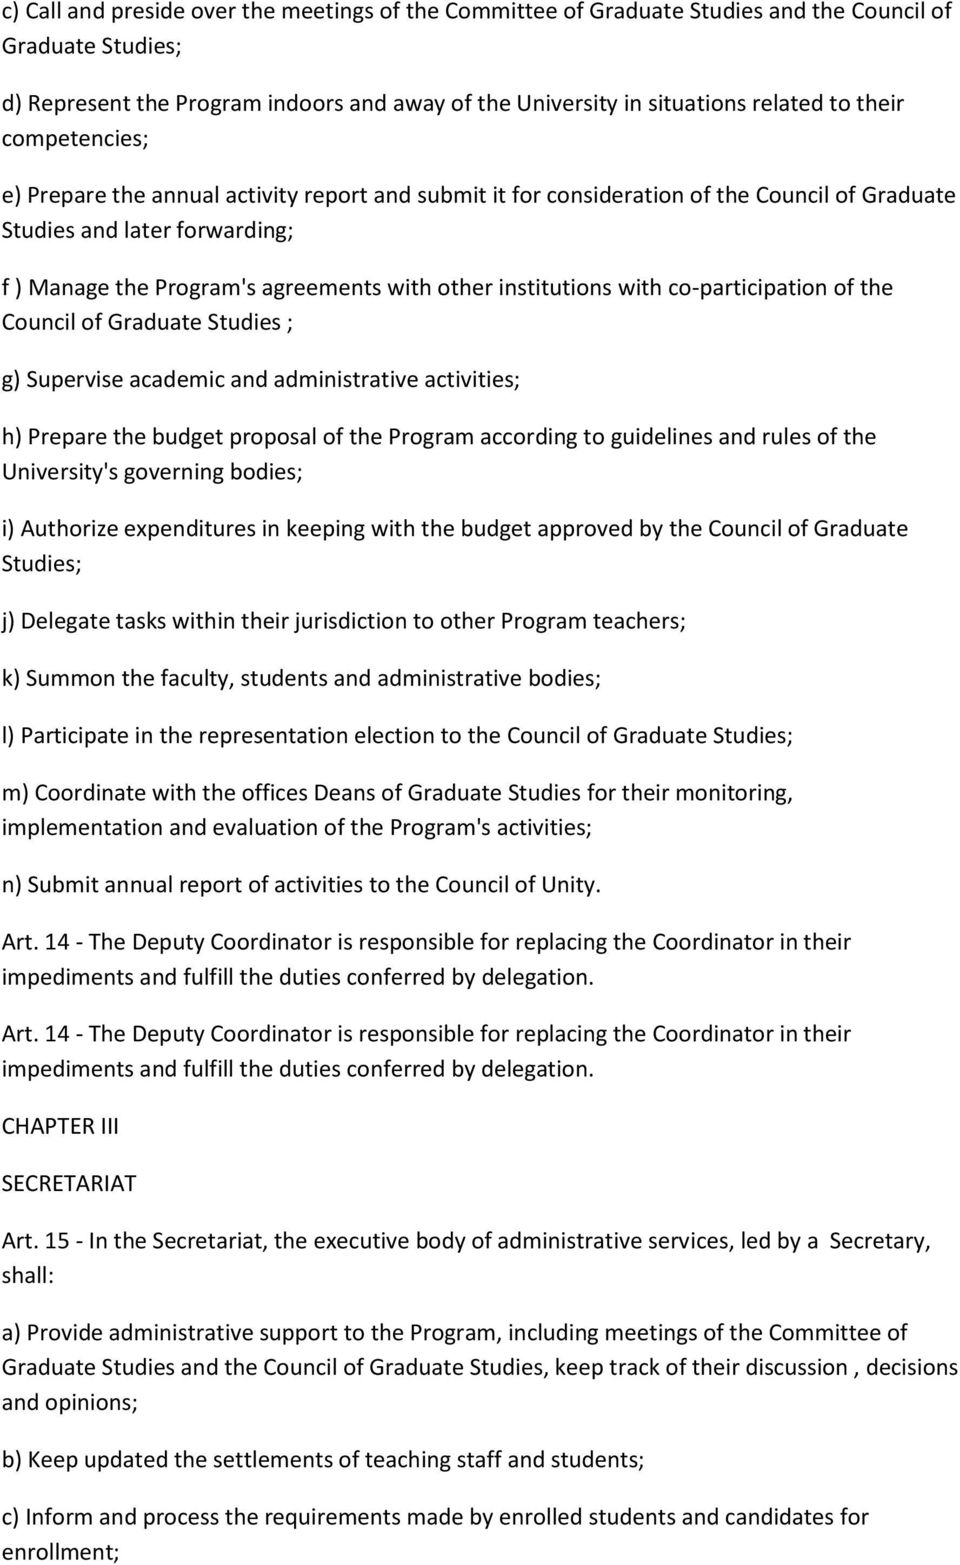 institutions with co-participation of the Council of Graduate Studies ; g) Supervise academic and administrative activities; h) Prepare the budget proposal of the Program according to guidelines and